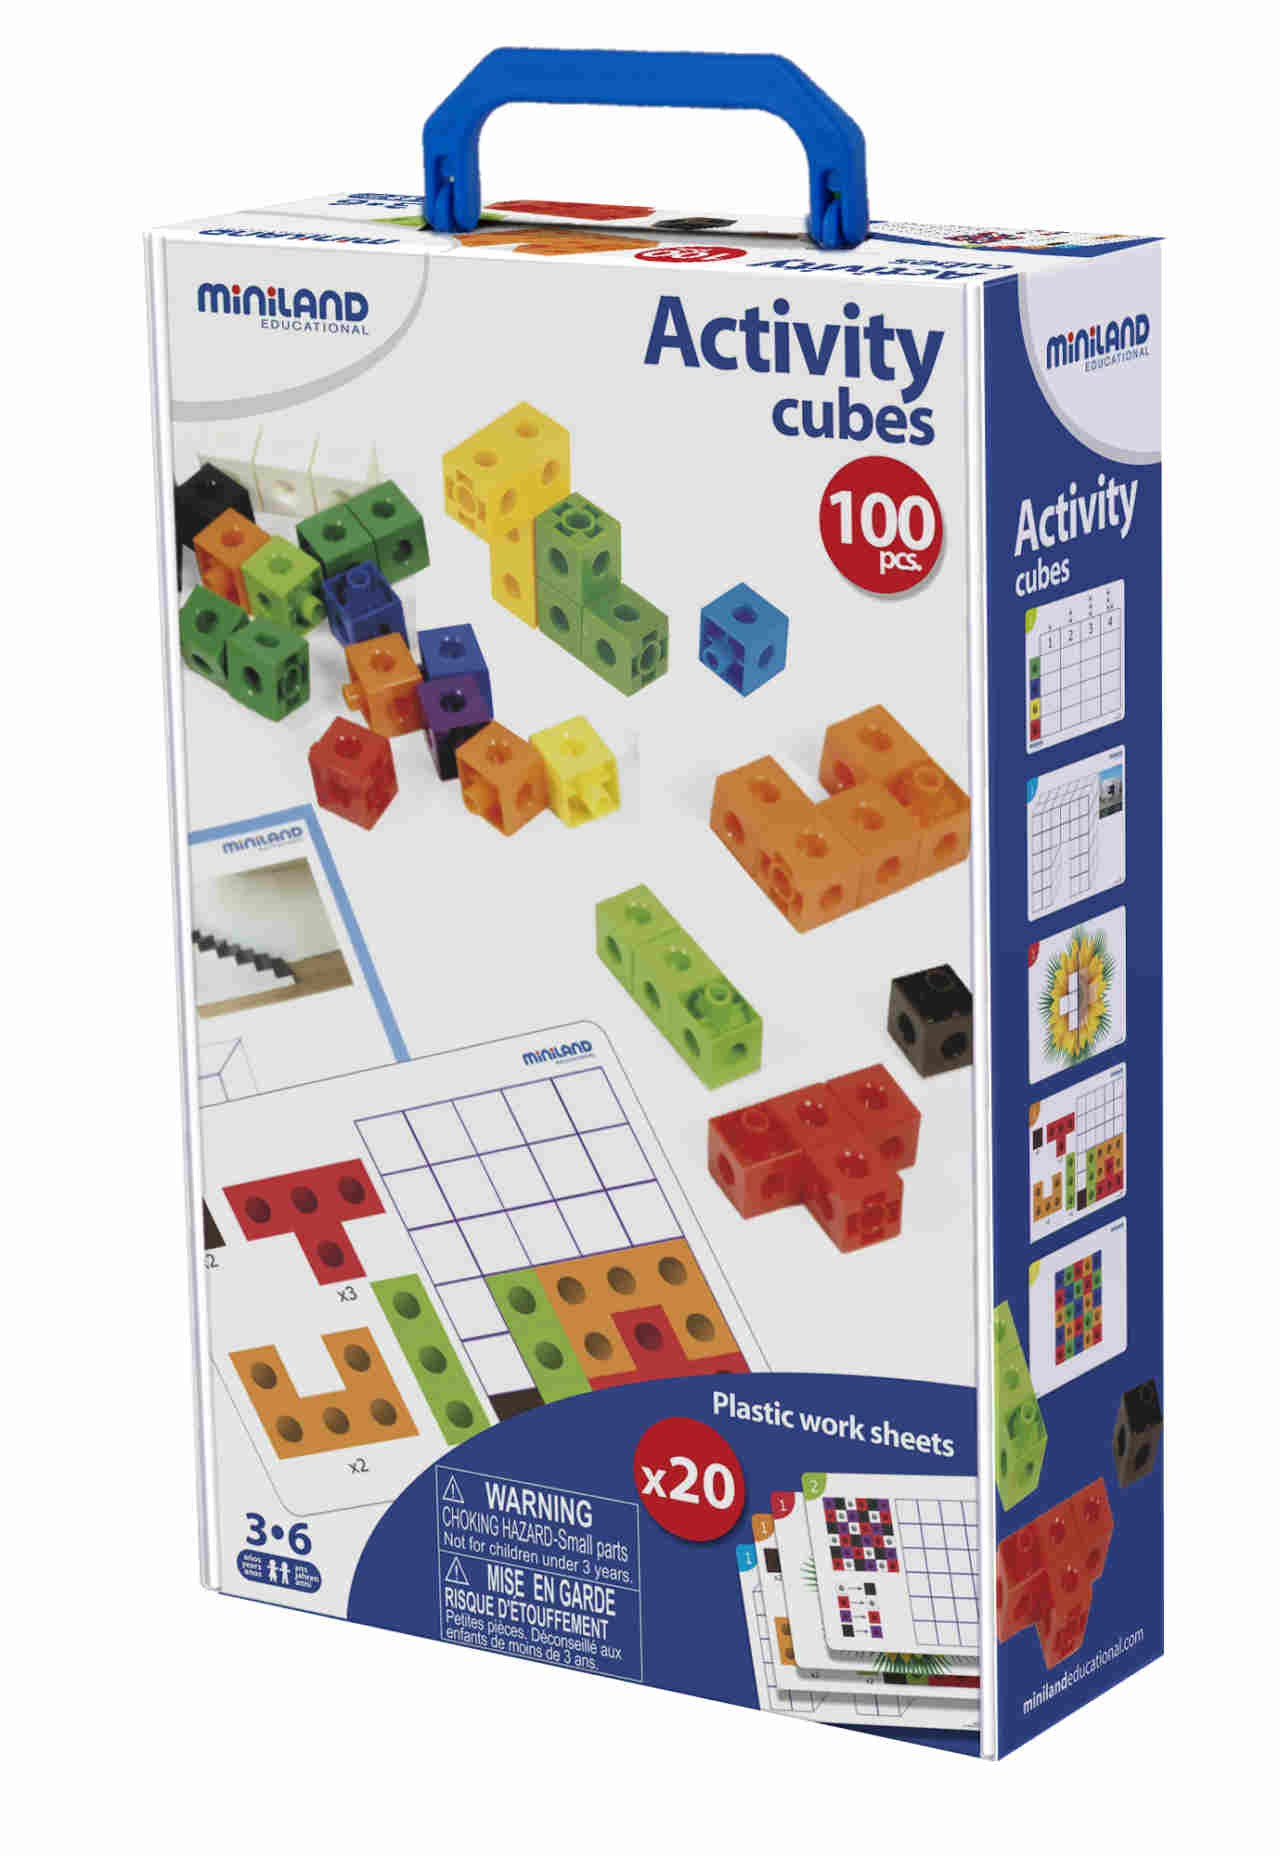 Activity Cubes - 100 pcs